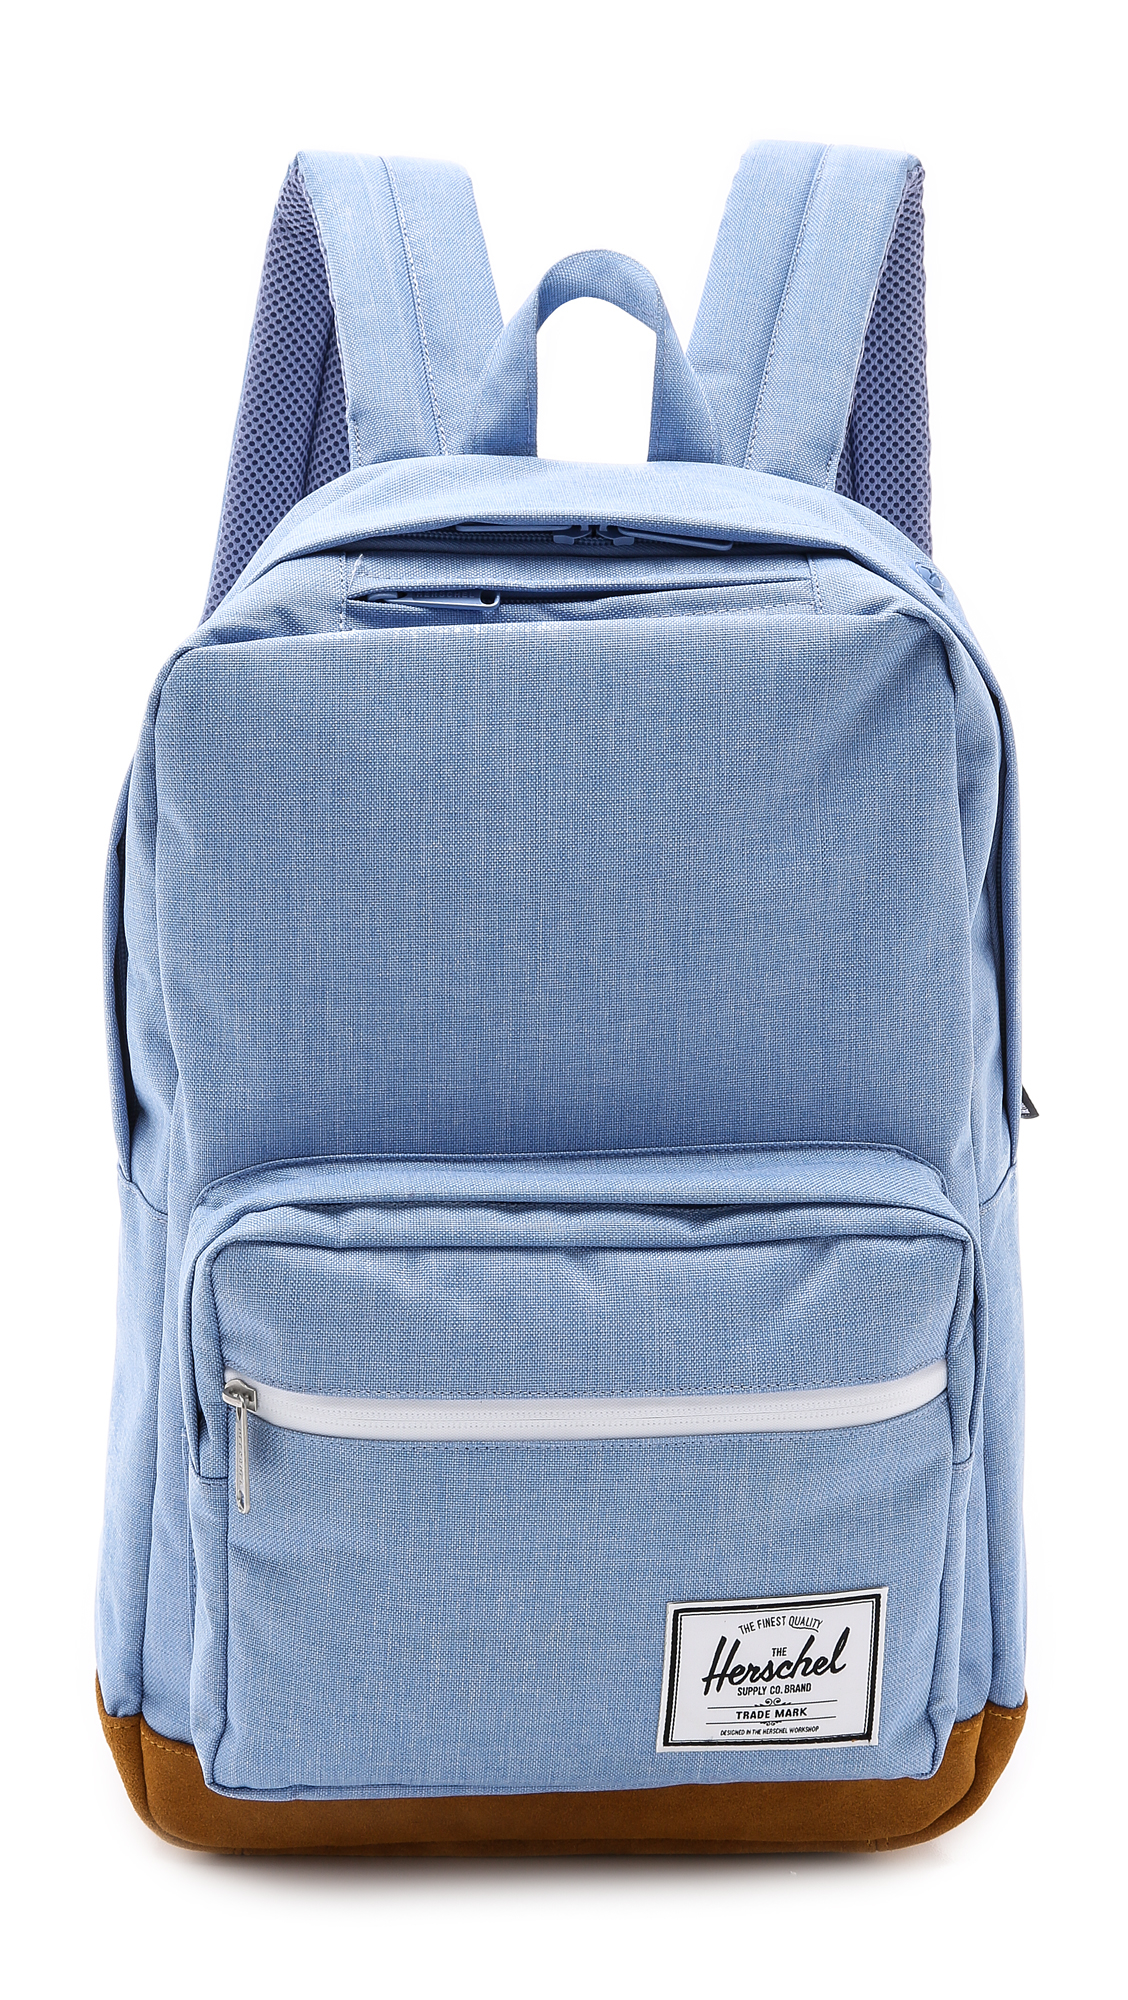 59c458a17b82 Herschel Supply Co. Pop Quiz Backpack - Chambray in Blue - Lyst